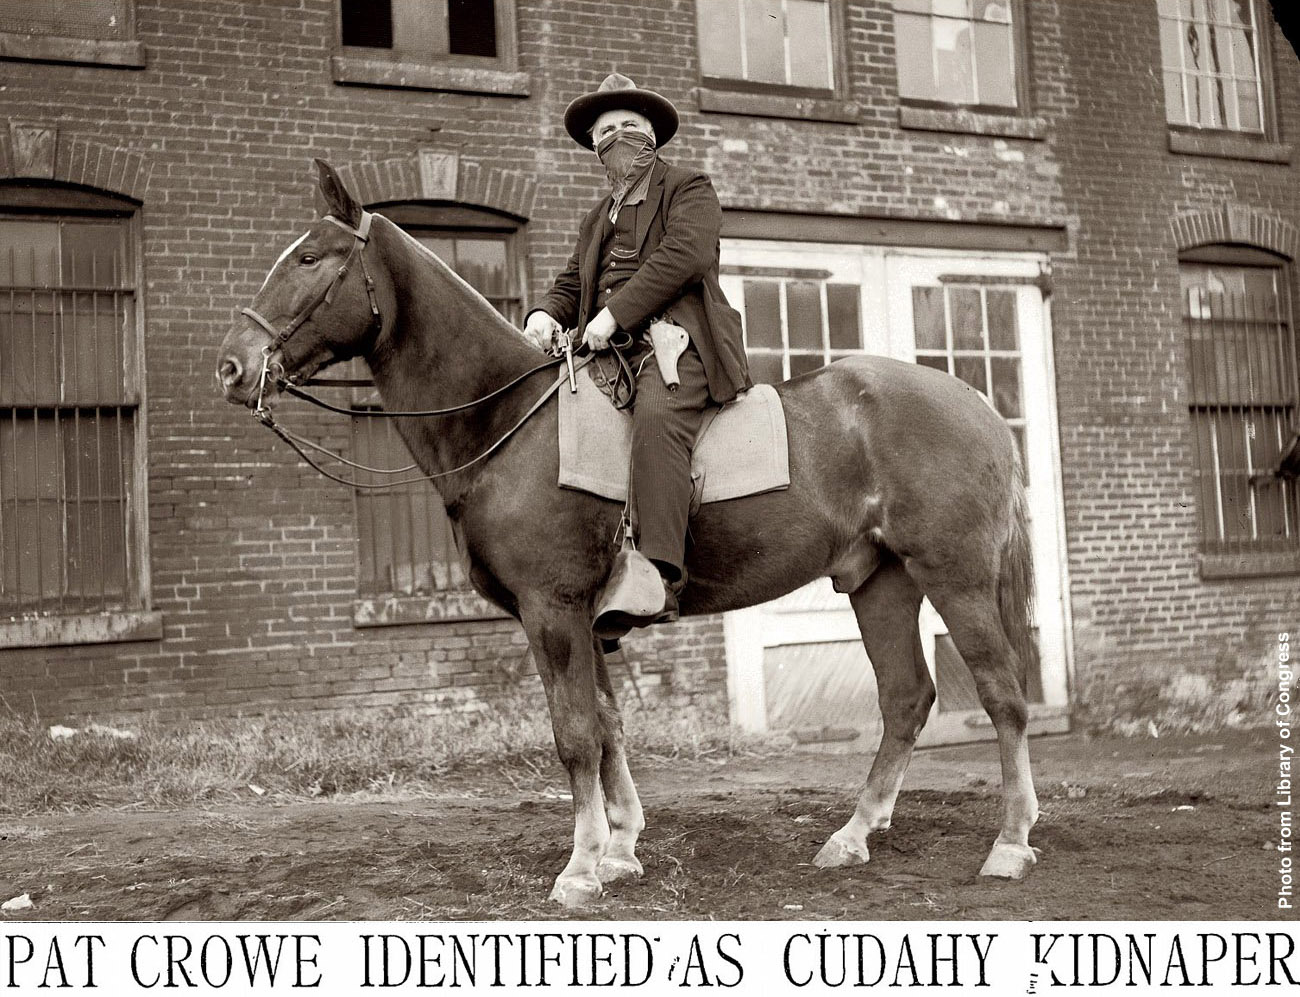 Photo of the Outlaw Butcher Pat Crowe that the bacon is named after.